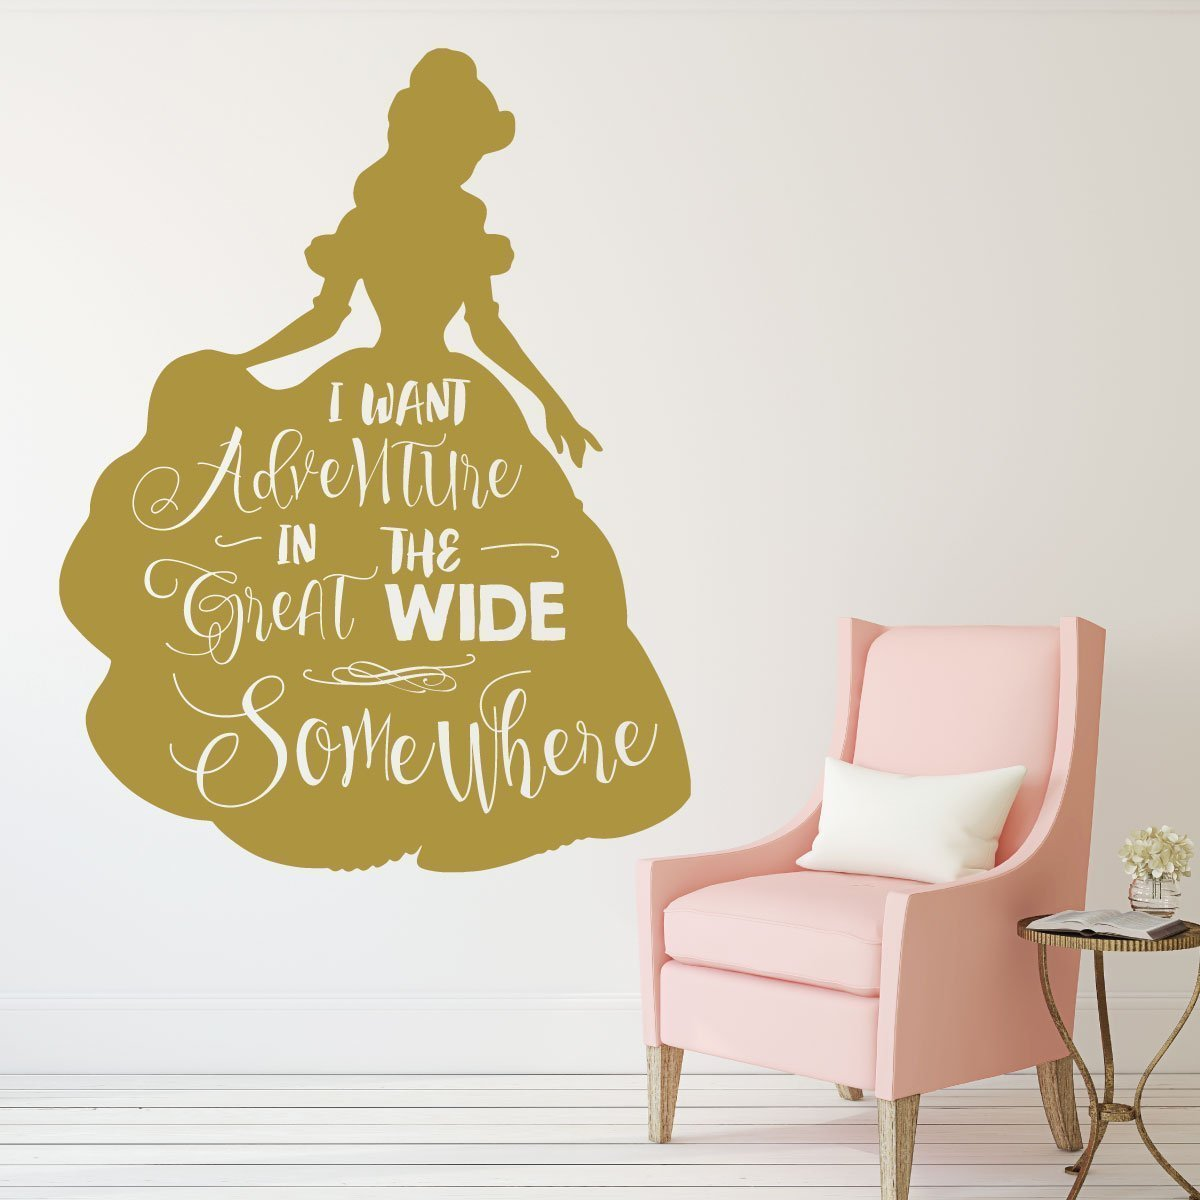 Outstanding Disney Princess Foam Wall Decorations Frieze - Wall Art ...